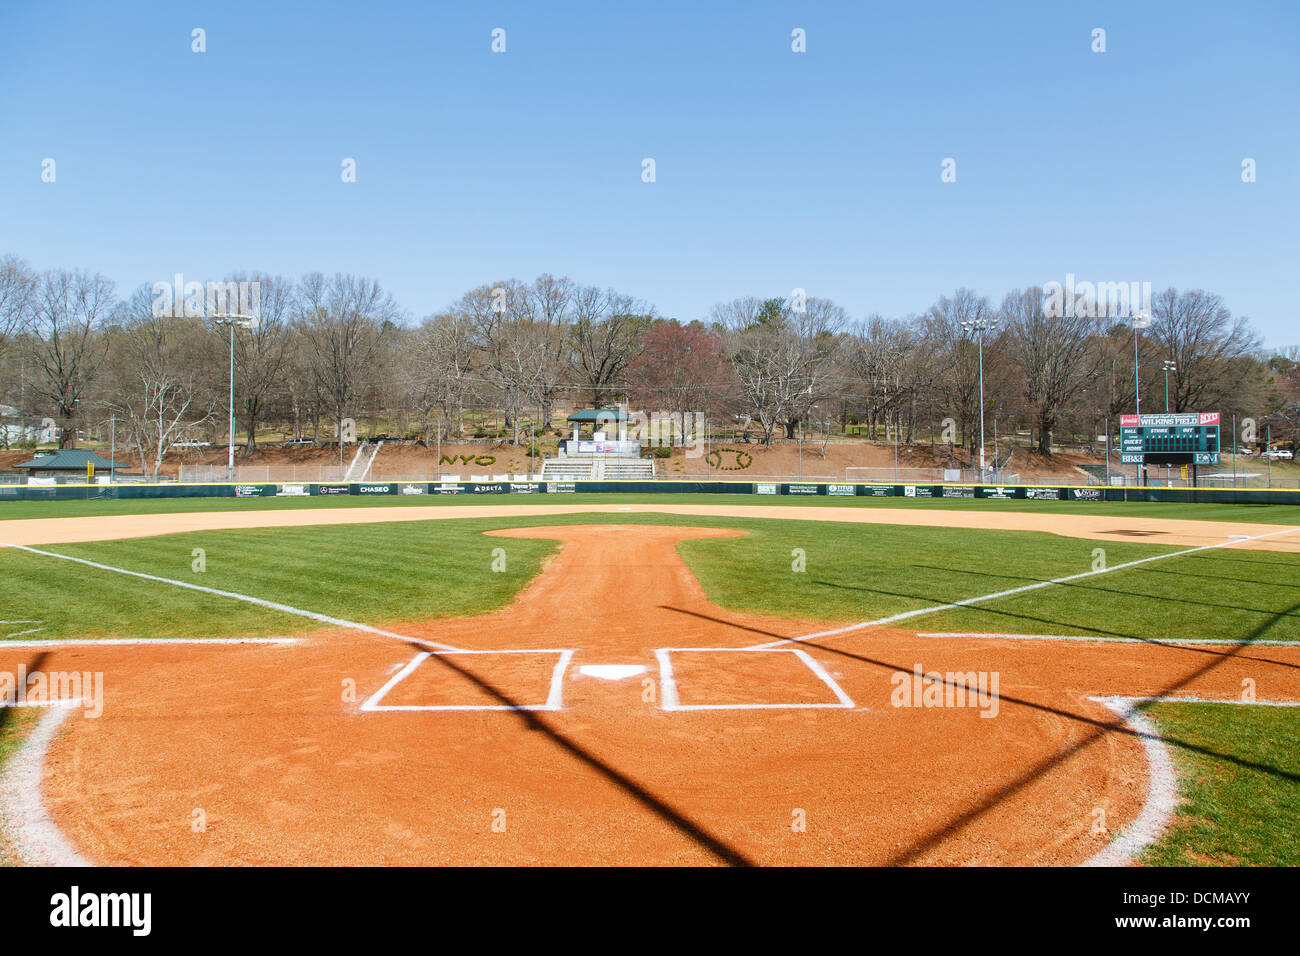 a view from behind home plate past the pitchers mound into the